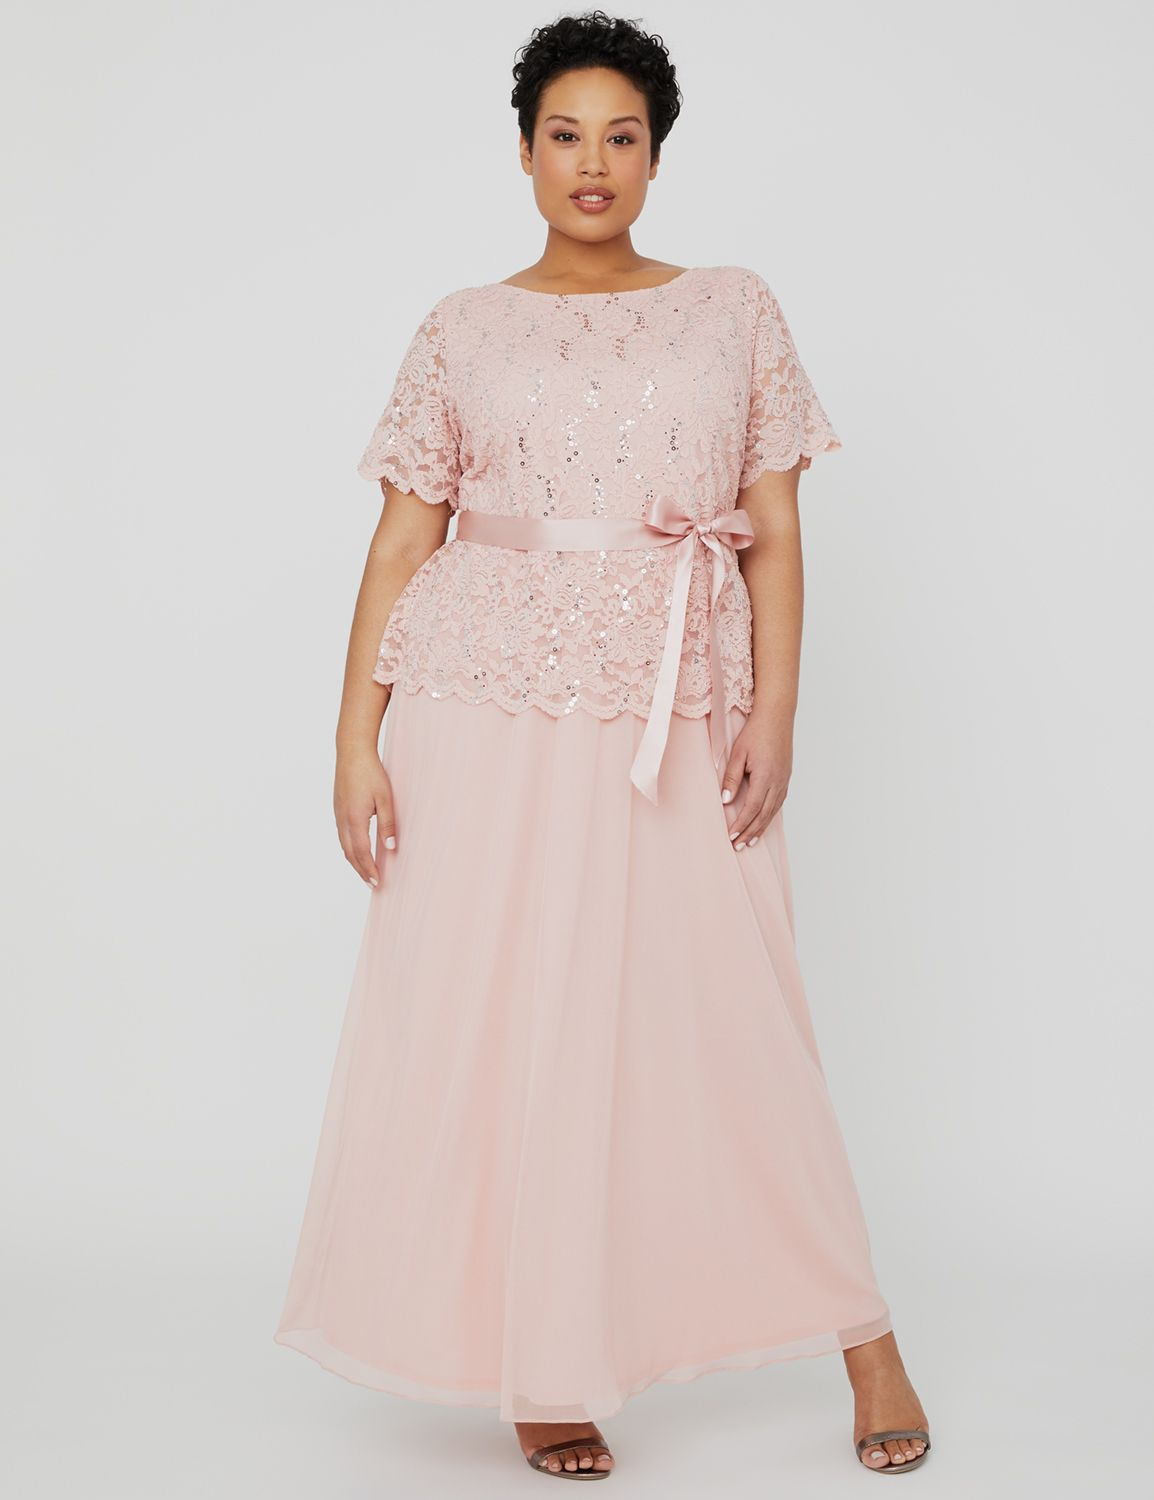 Blush Sunset Dress 1090995 Long Dress with Lace Bodice MP-300101535